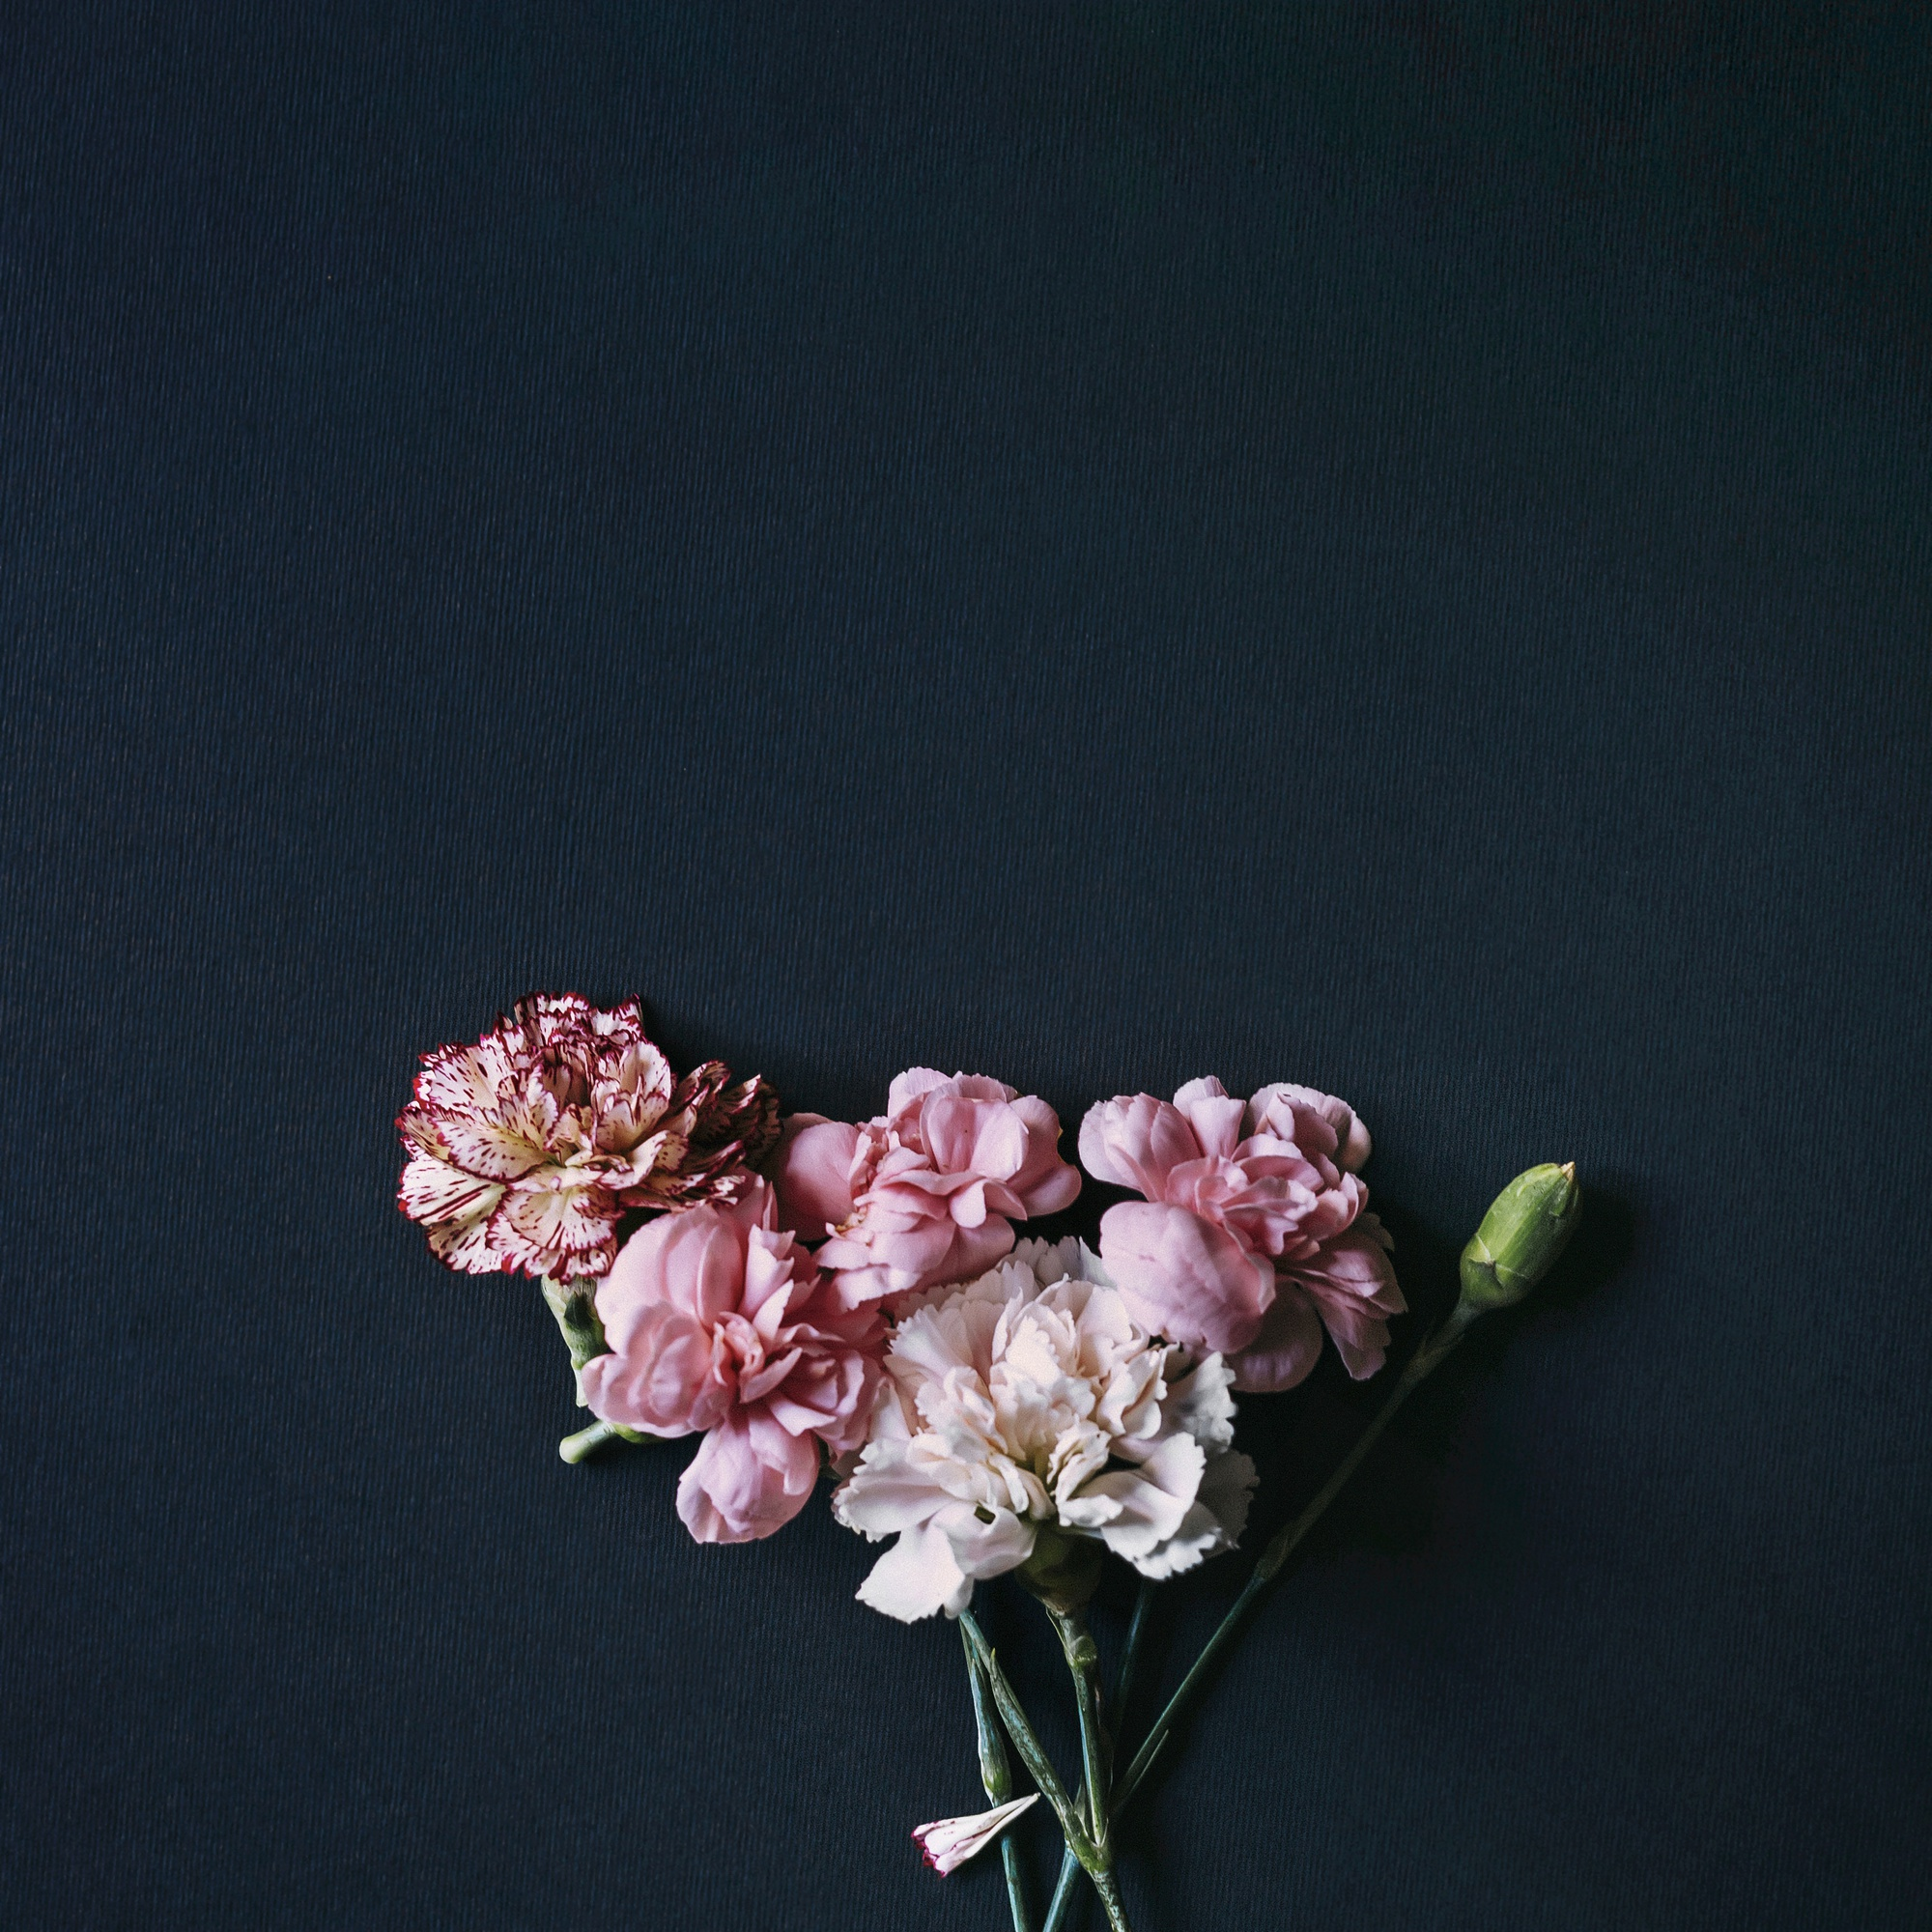 Beautiful bunch of colorful carnation flowers with bud over black backdrop